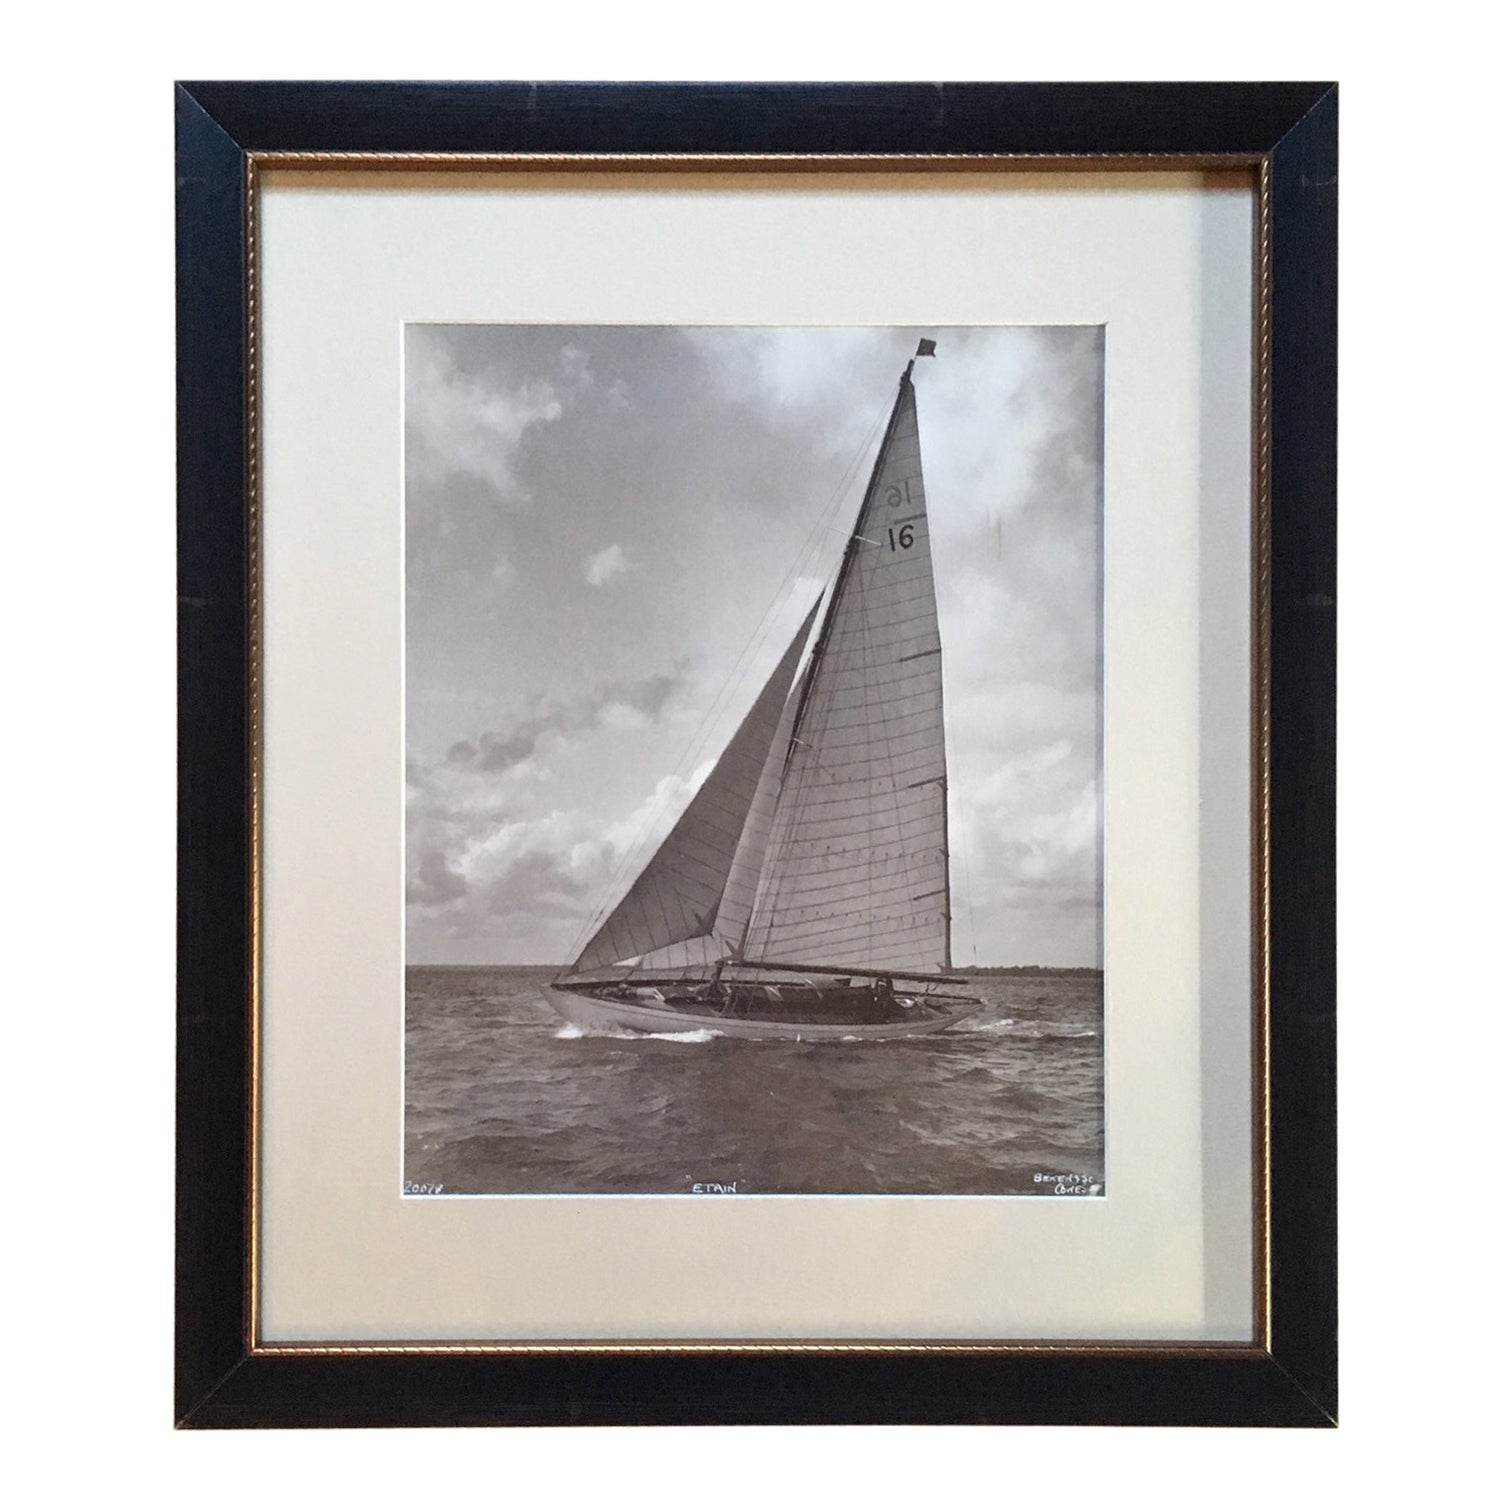 Original Photograph of a Yacht by Beken of Cowes, circa 1920